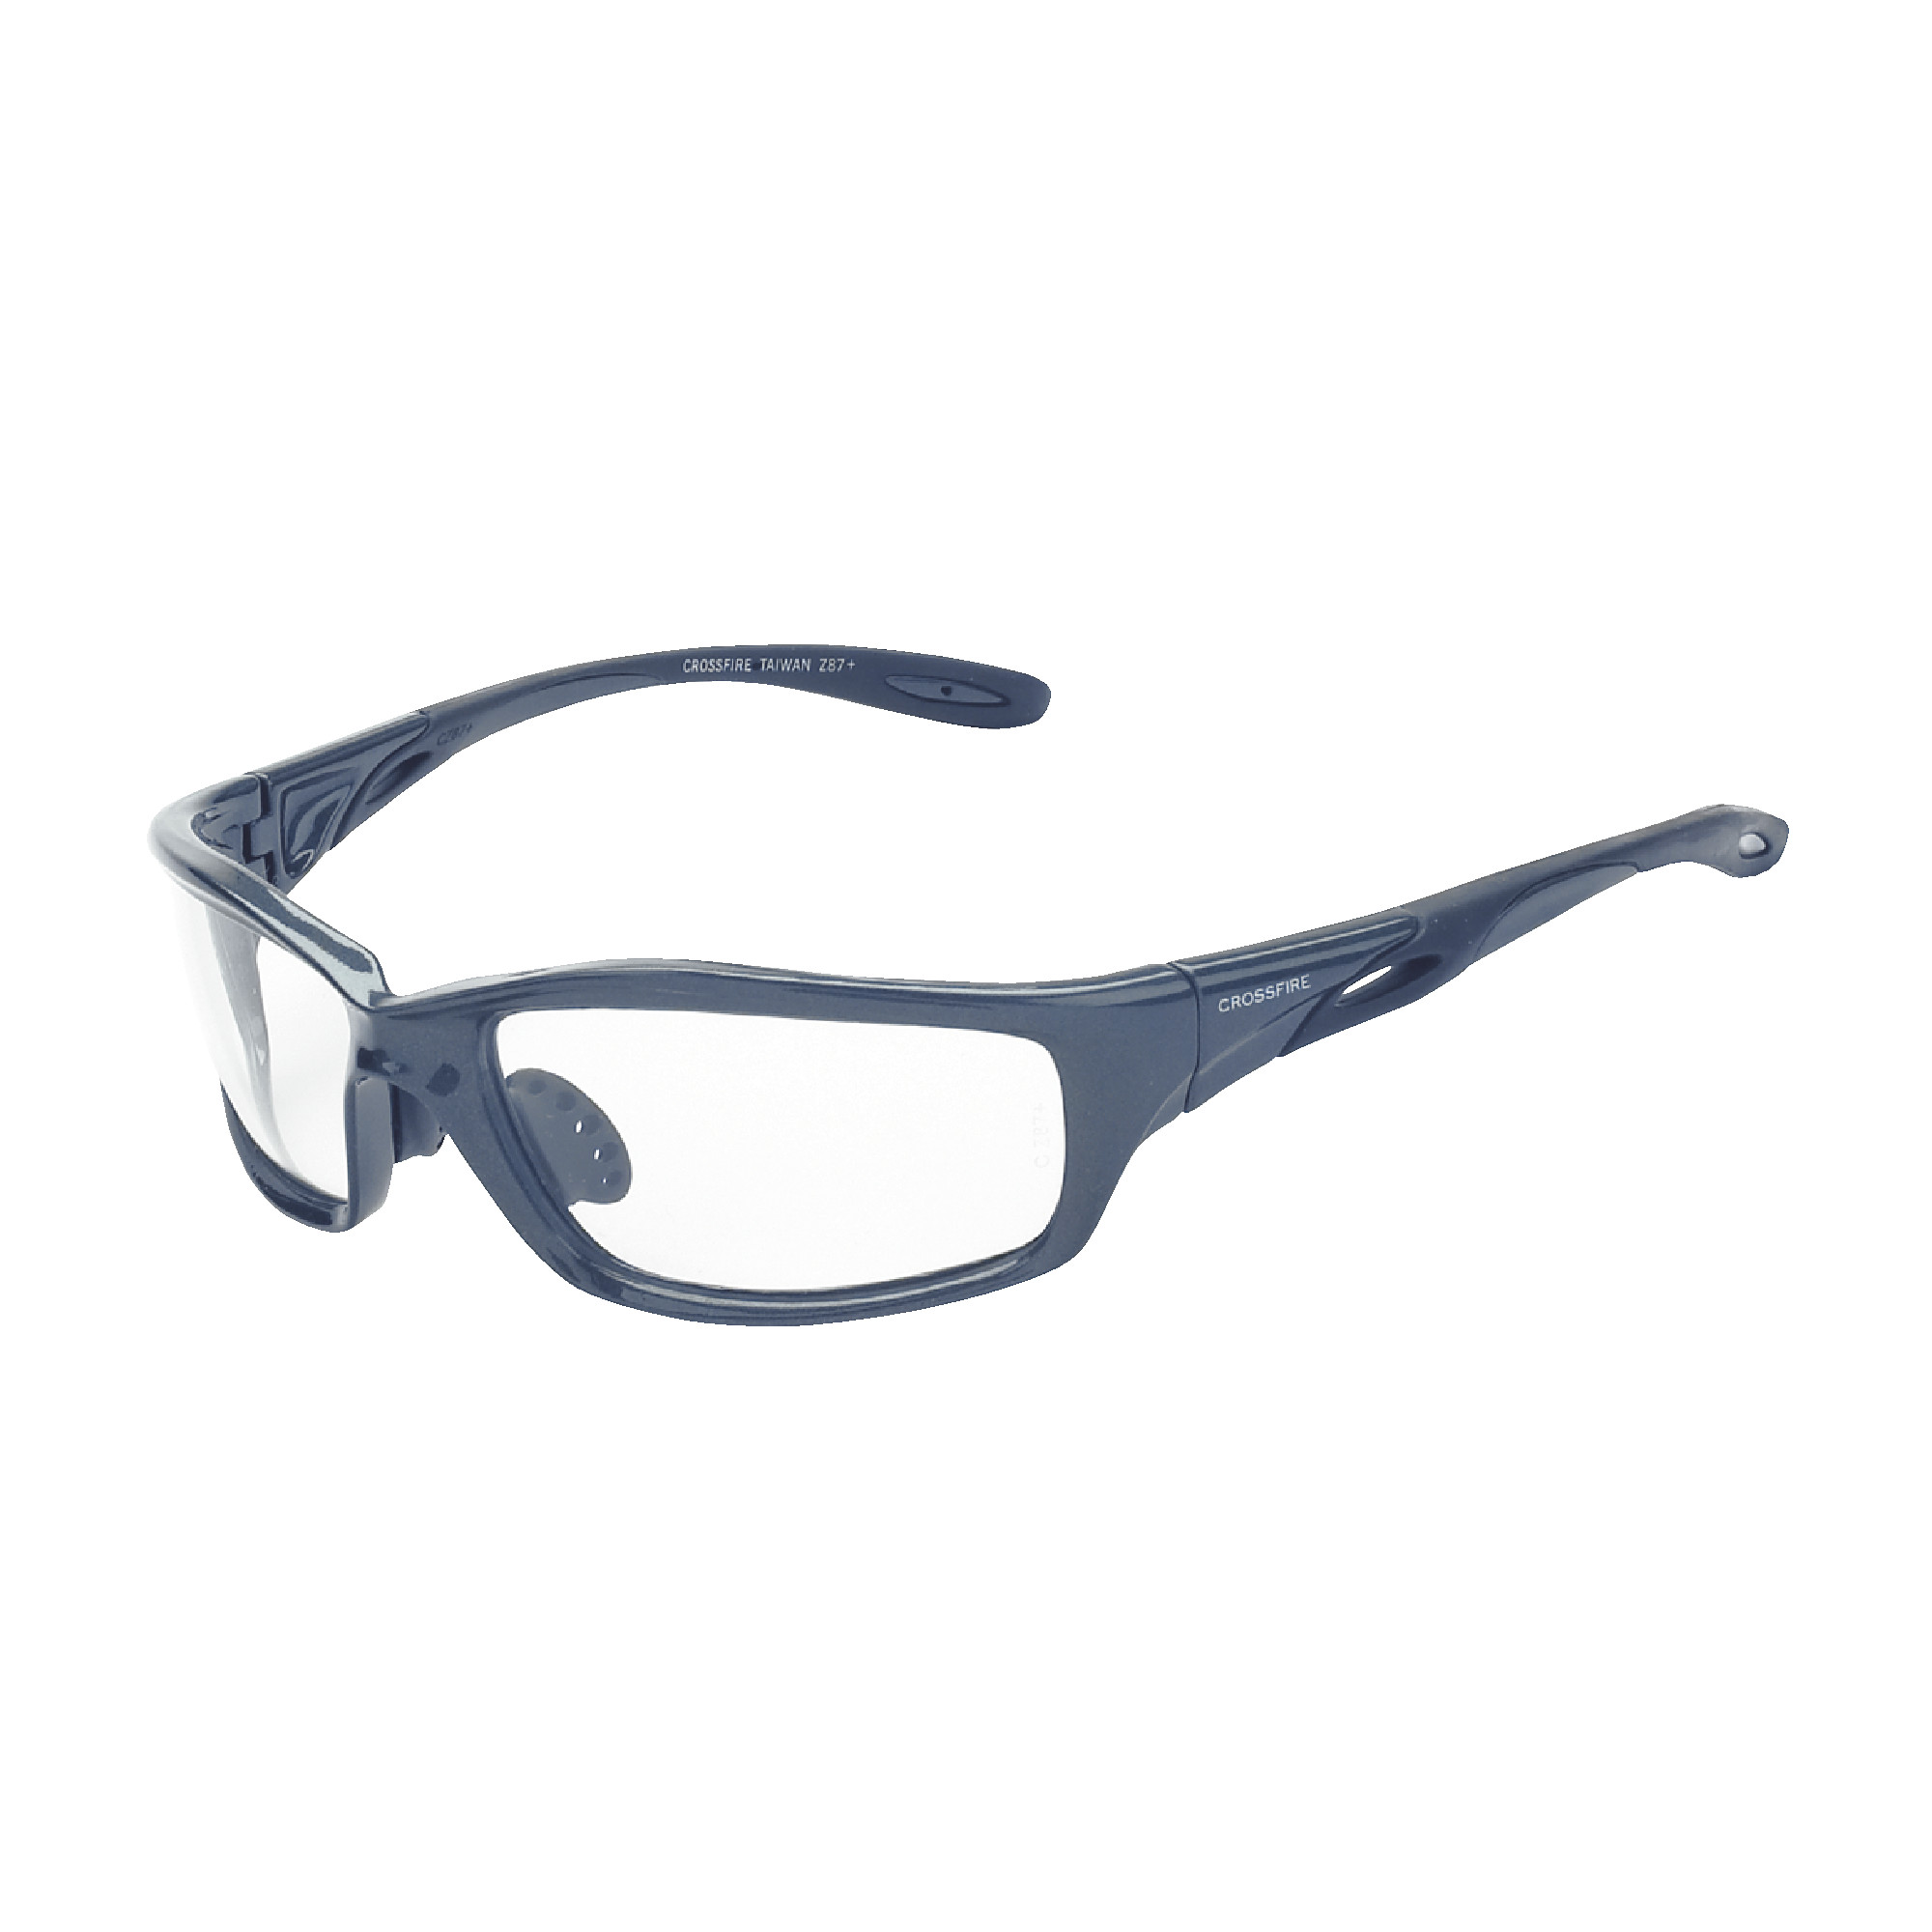 224 INFINITY GREY FRAME CLEAR LENS - CROSSFIRE